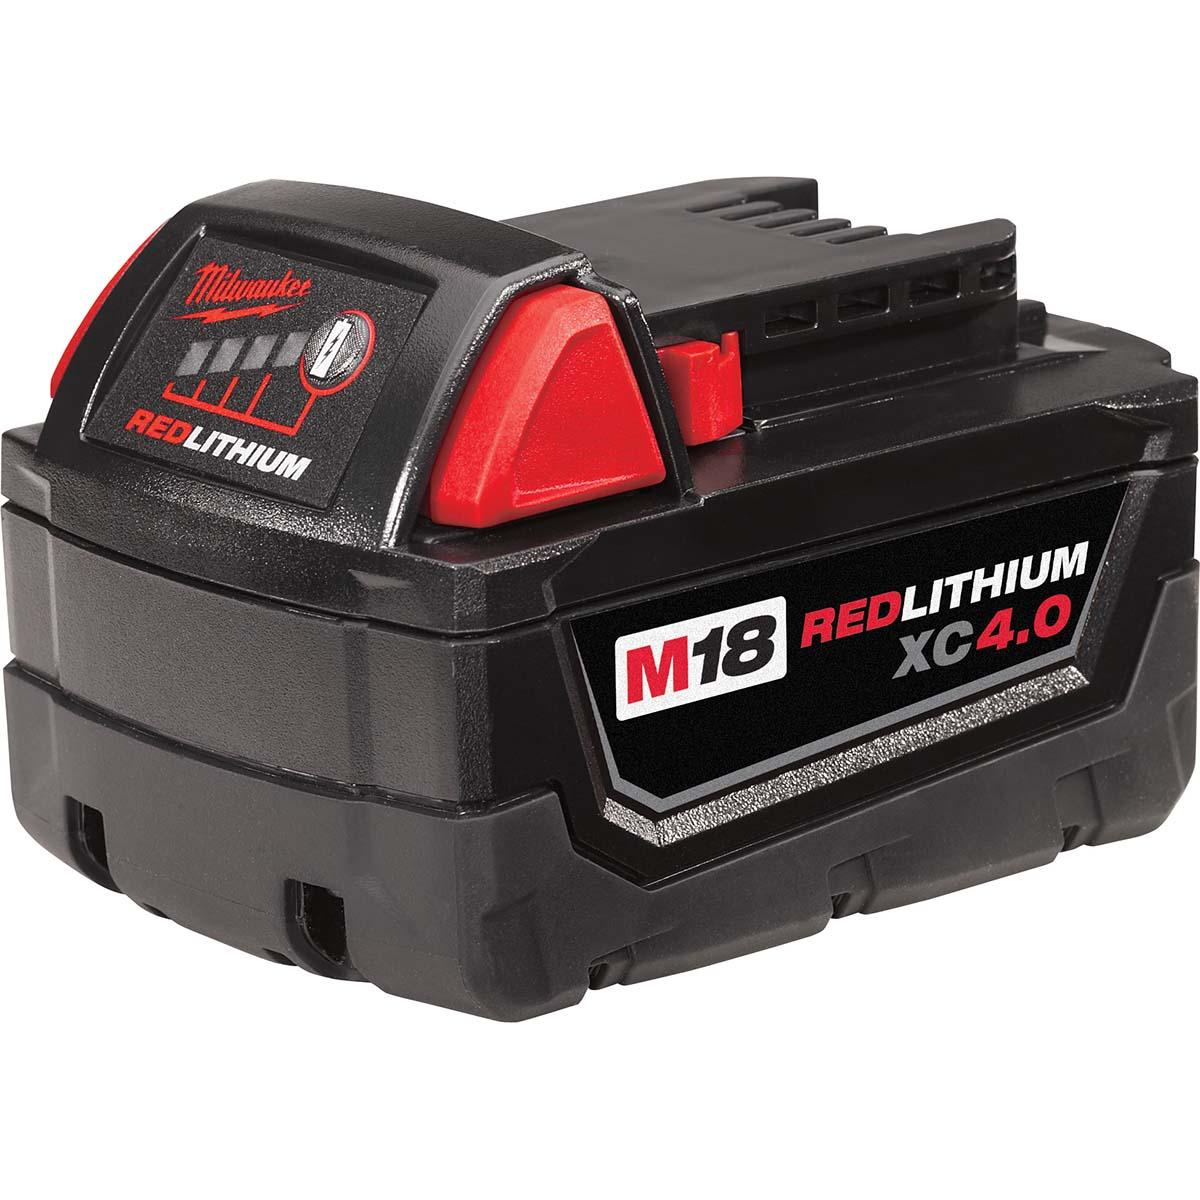 M18 REDLITHIUM XC 4.0 Extended Capacity Battery Pack